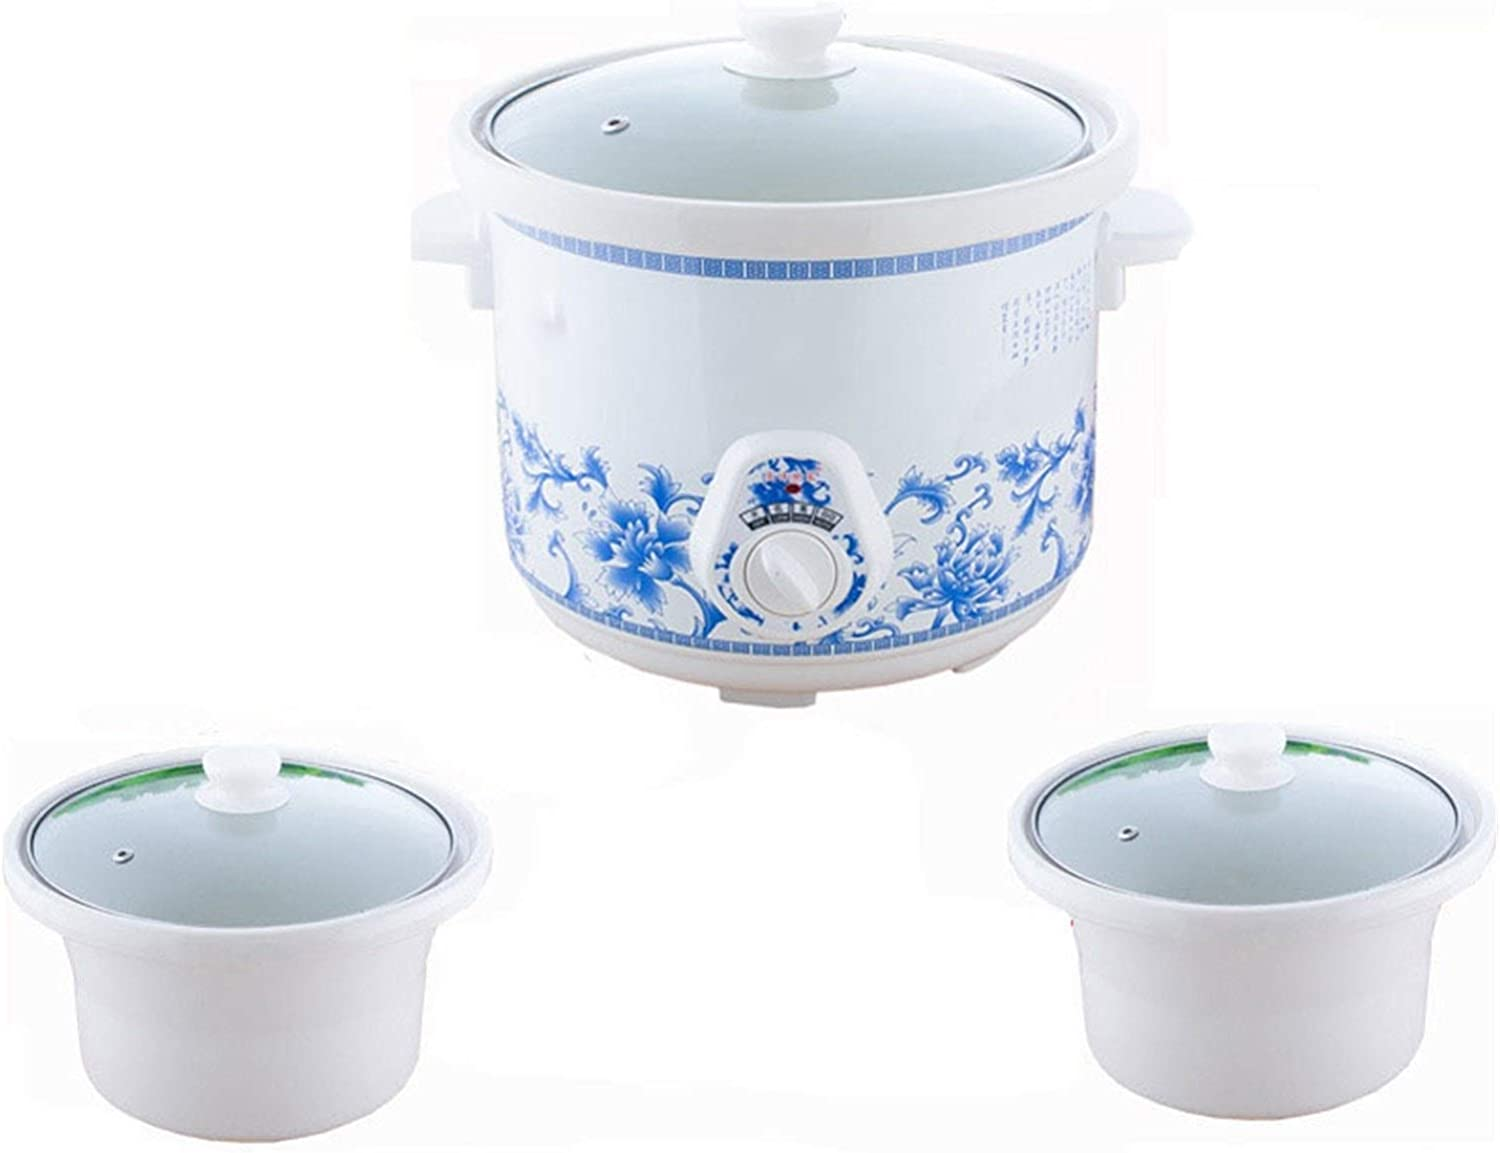 WYJW Household Electric Mini Slow Cooker 140W Mechanical Timer Stewing Soup Porridge Pot Ceramic Food Cooking Machine 1.5L Suitable for Steam Cook Stew Taste Delicious Family Kitchen (Color : A)